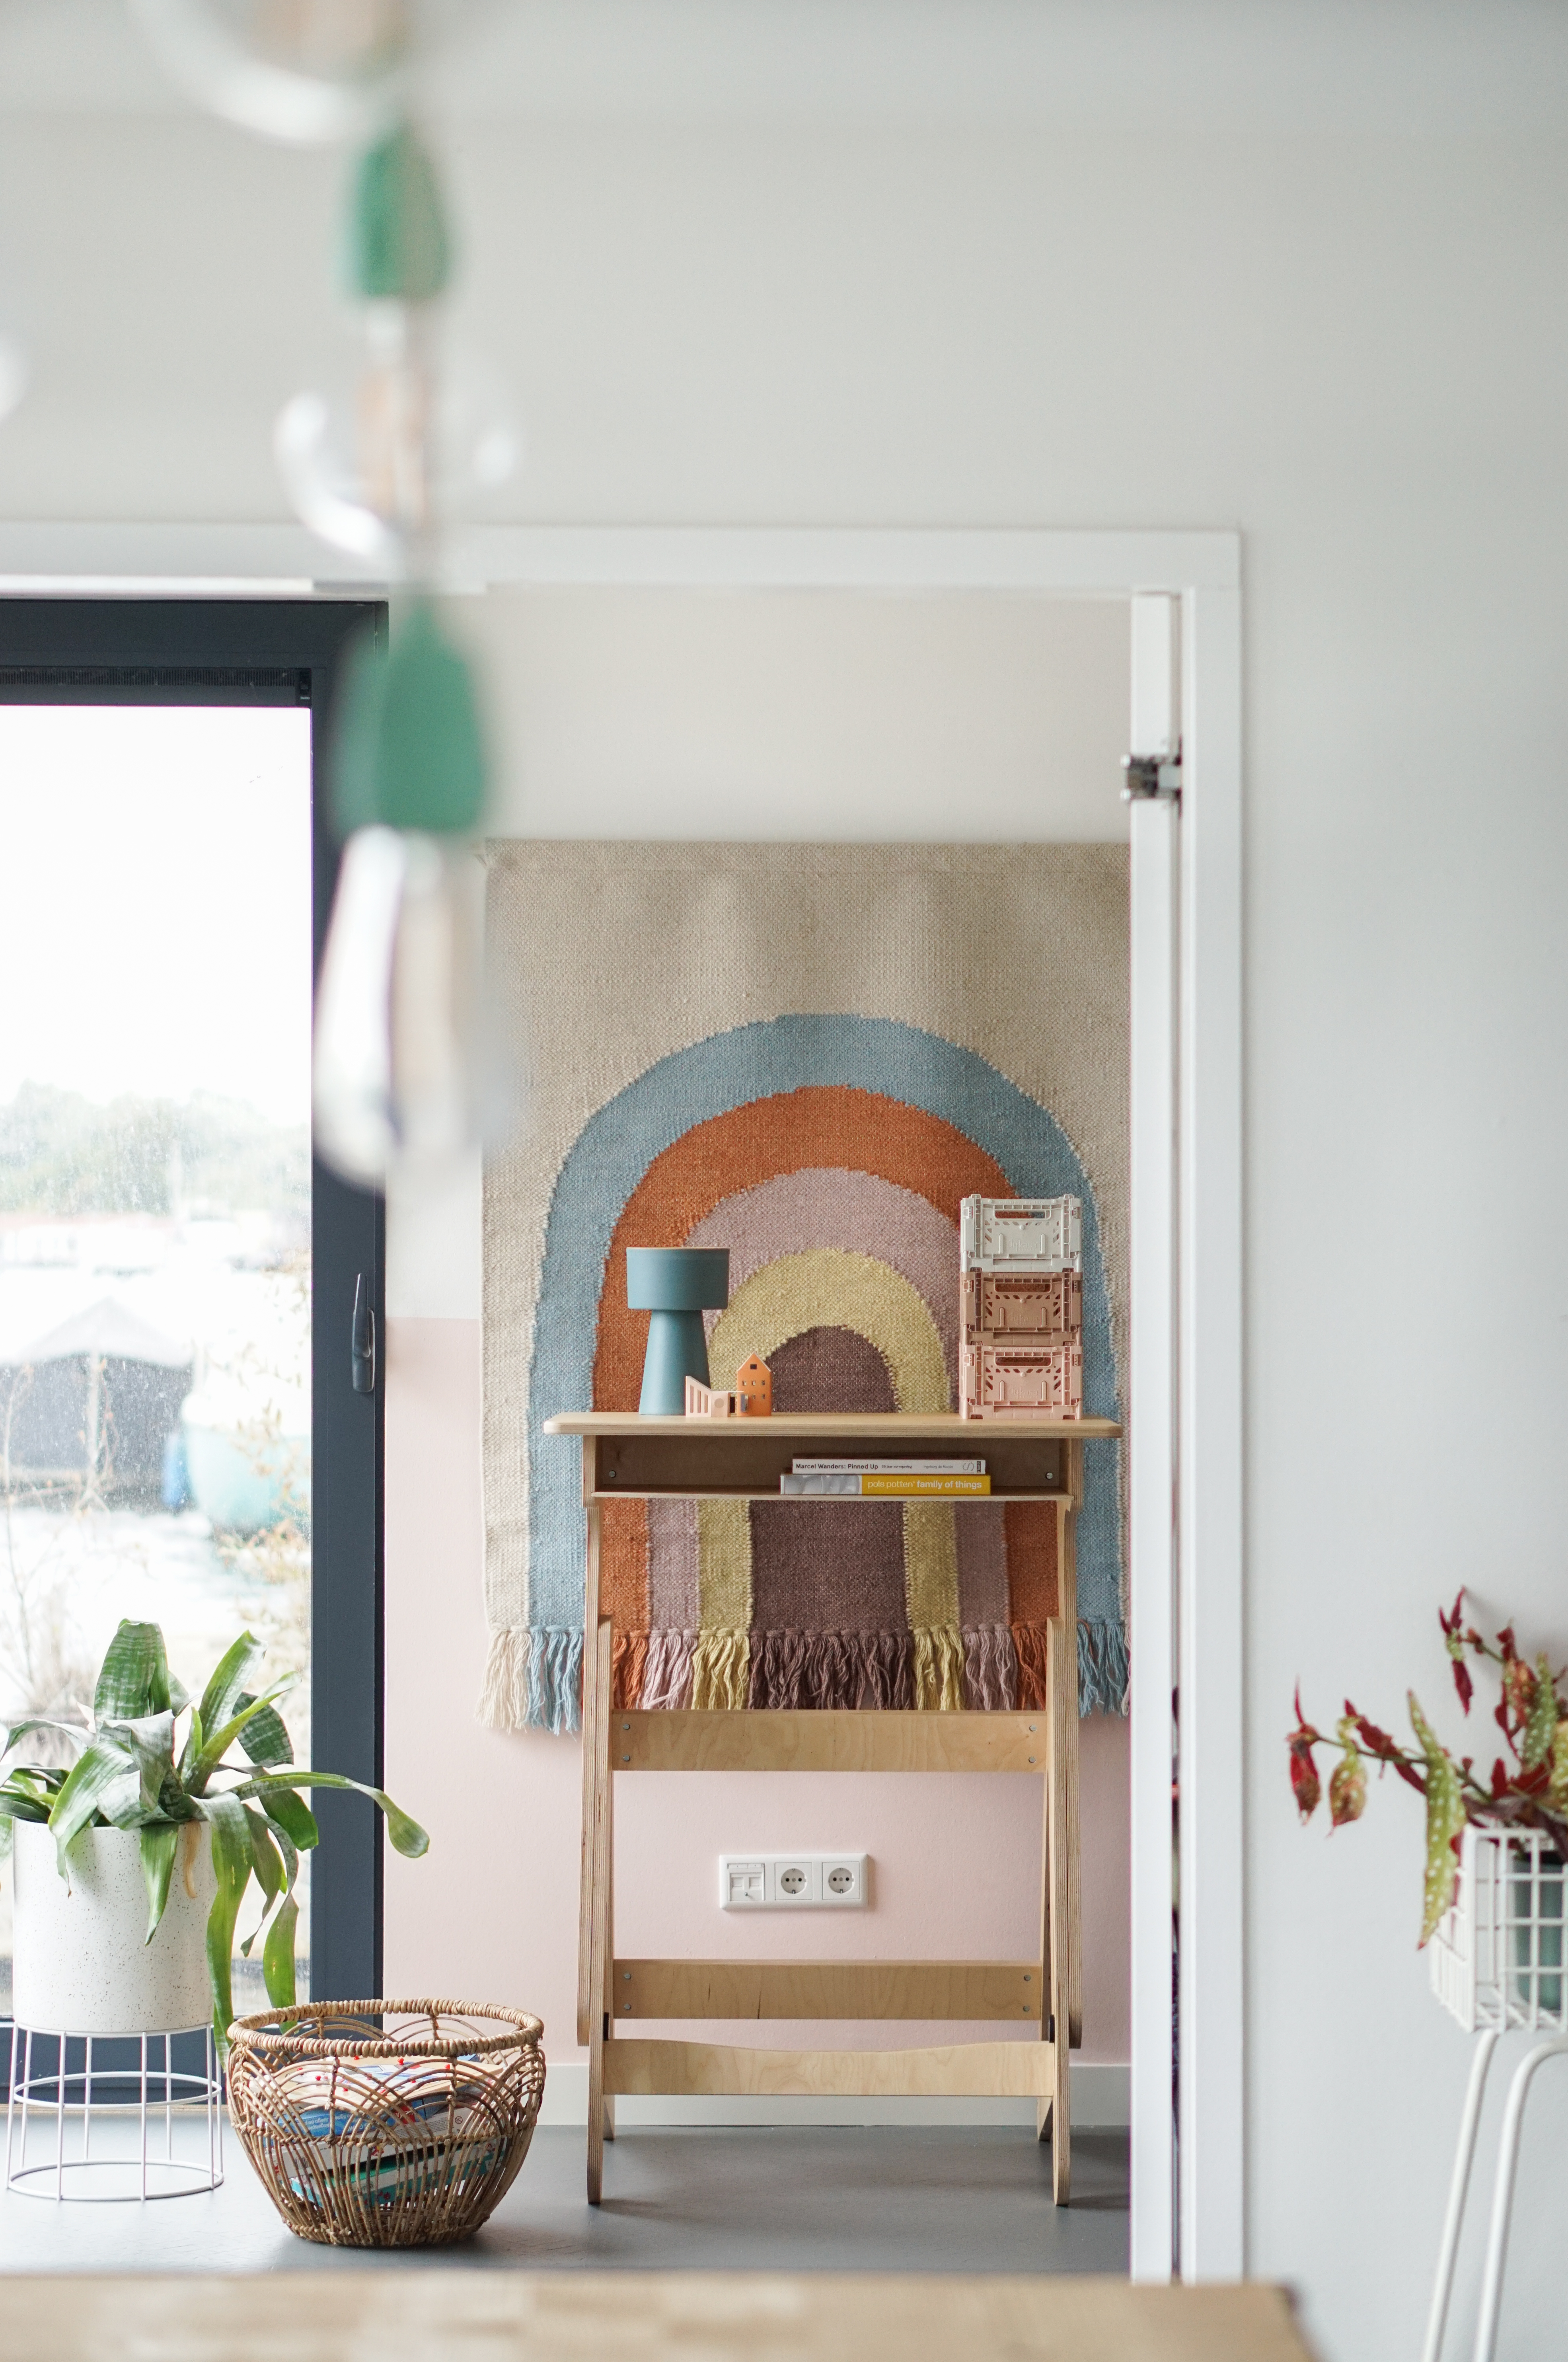 metamorfose naar een scandi boho interieur met spiced honey